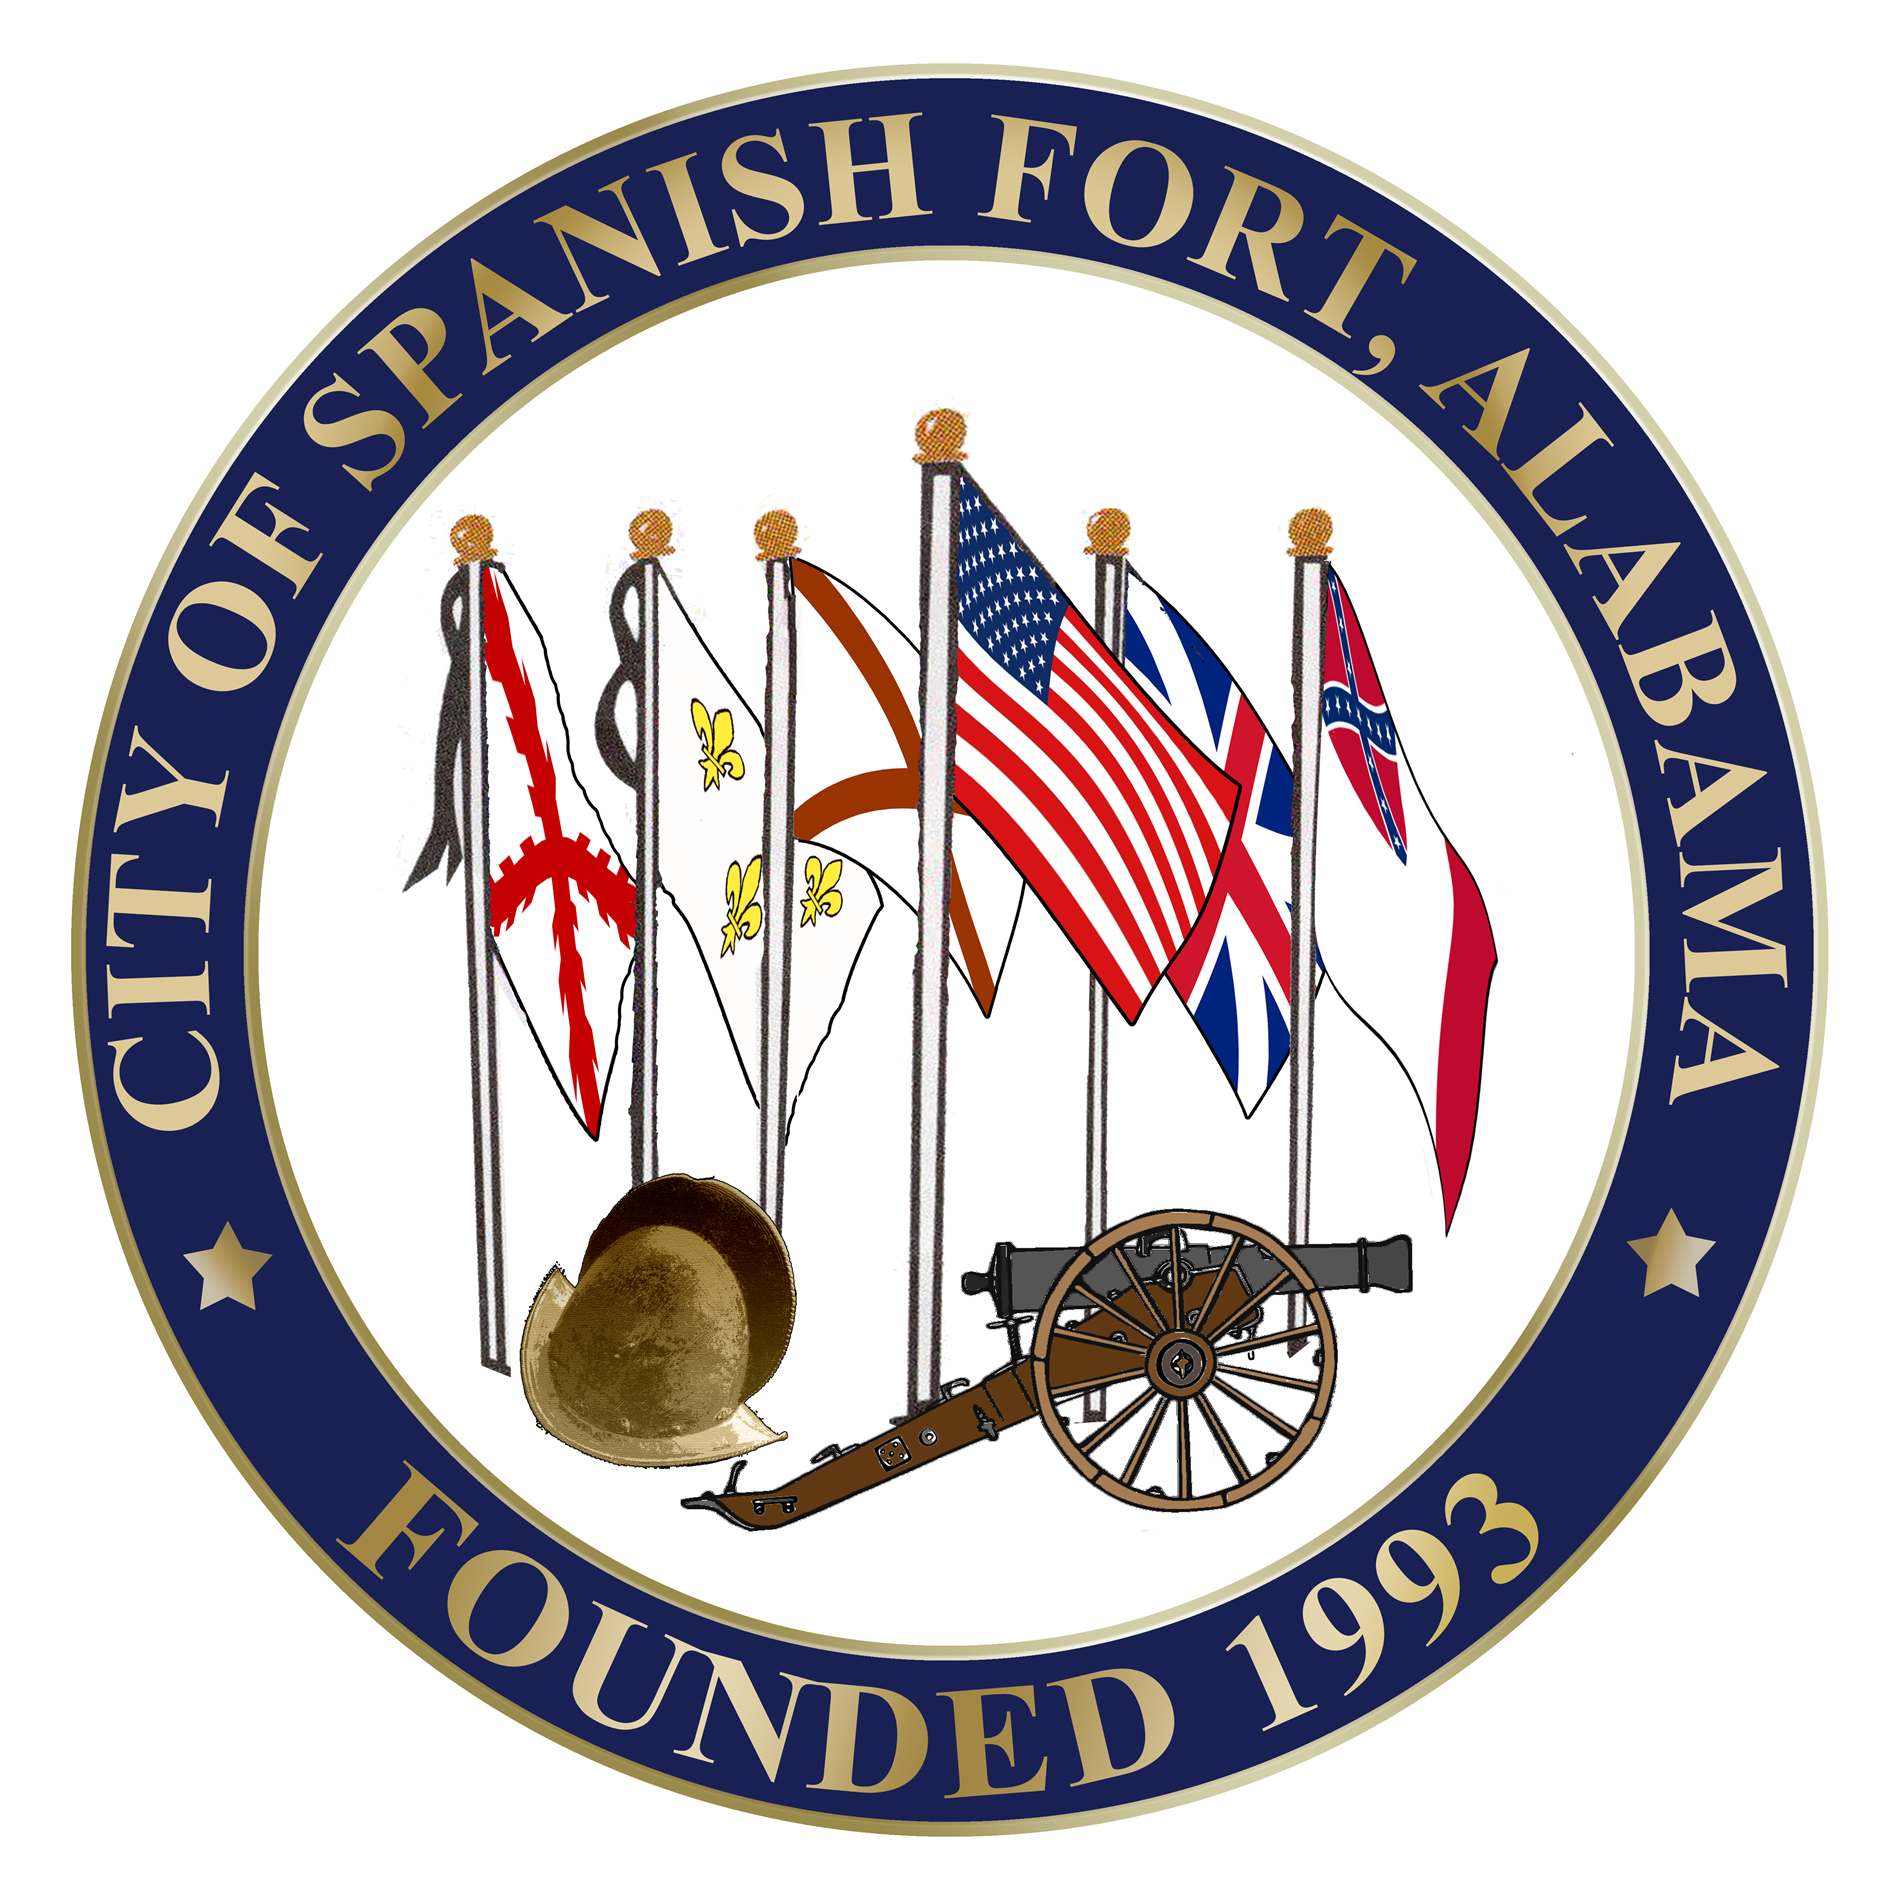 Official seal of the city of Spanish Fort, Alabama